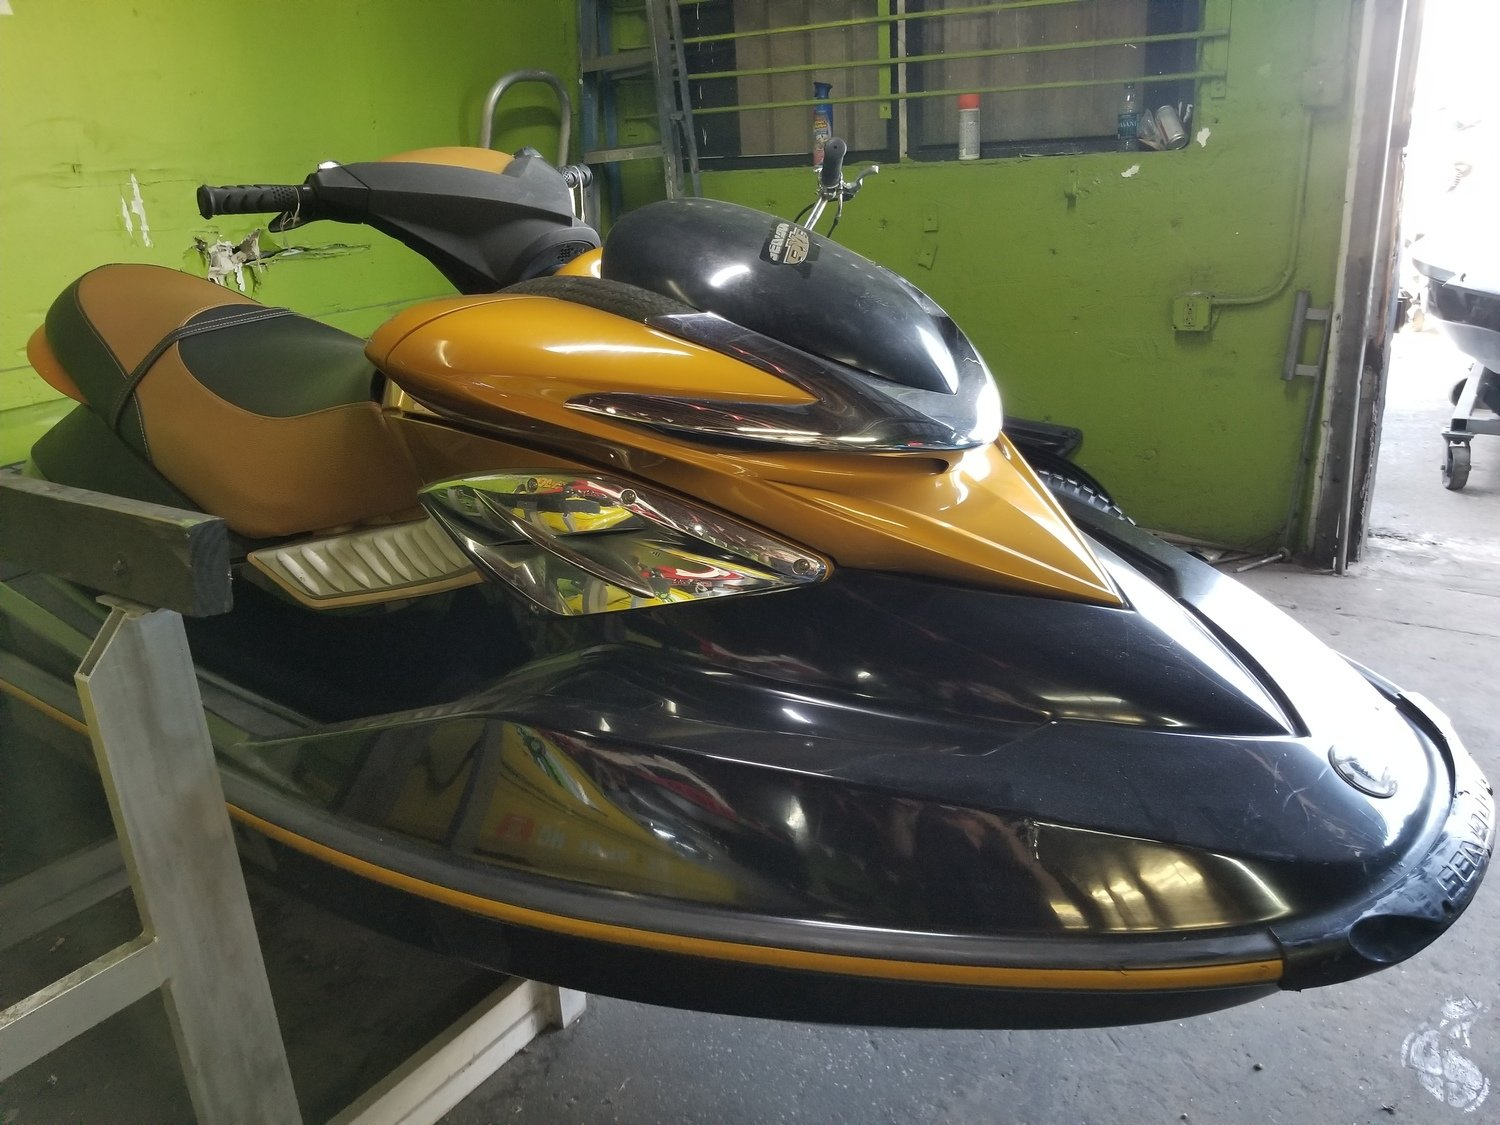 2006 Sea-Doo RXP  215-hp Supercharged Rotax  Powerful Engine  With 215-hp supercharged